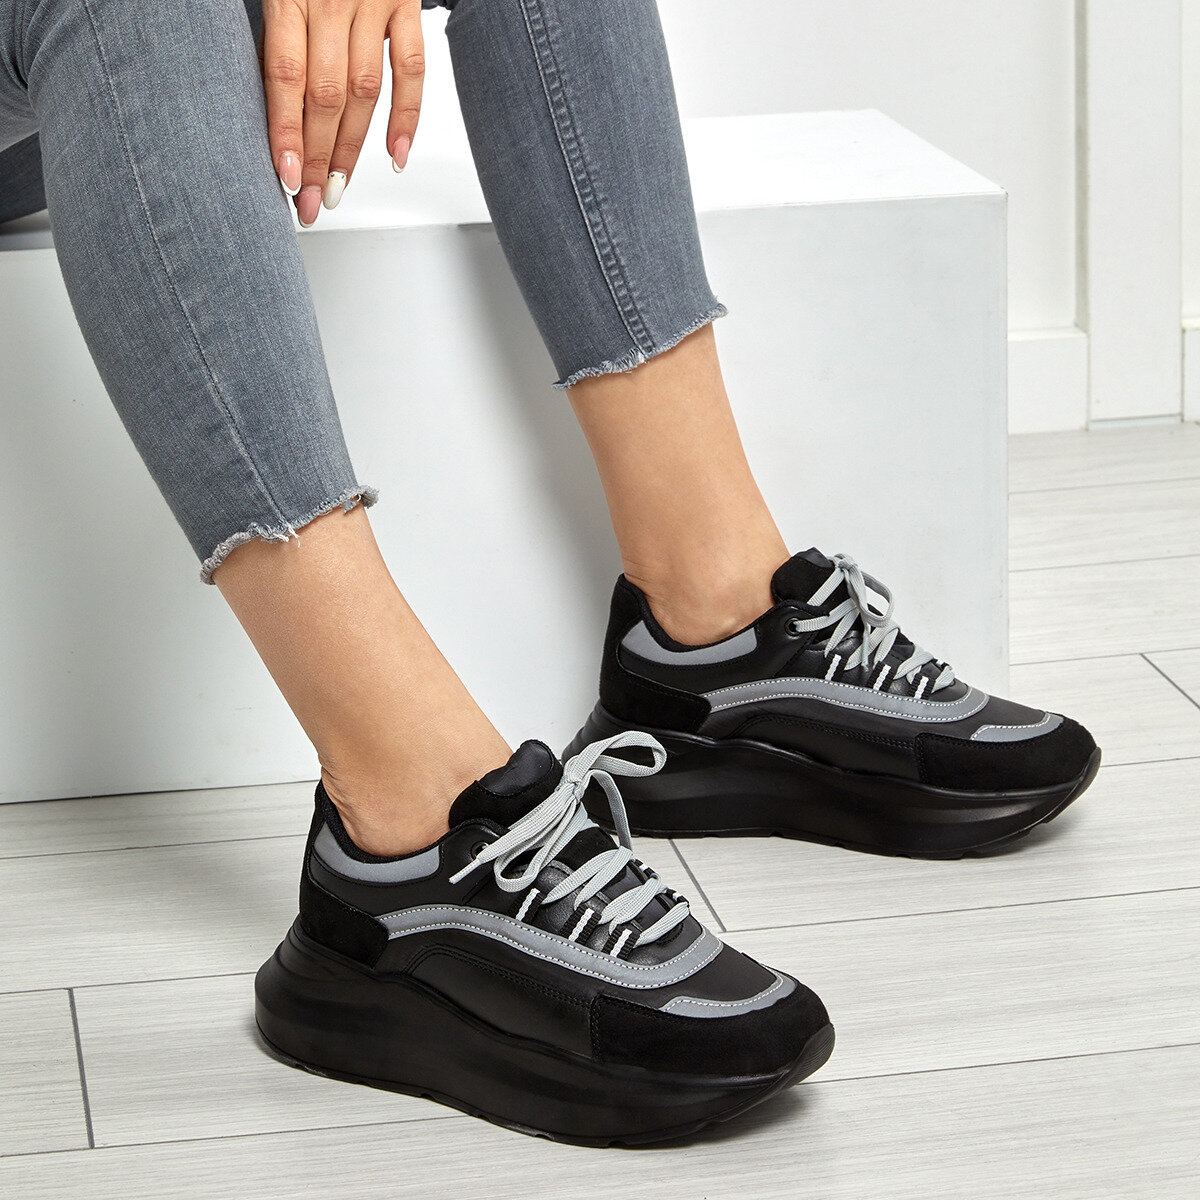 FLO Women Casual Sneakers Sport Spring Autumn Sneakers Breathable Women Shoes Lace Up Female Boots Comrfortable Platform Shoes Women Black BUTIGO 19SF-2058